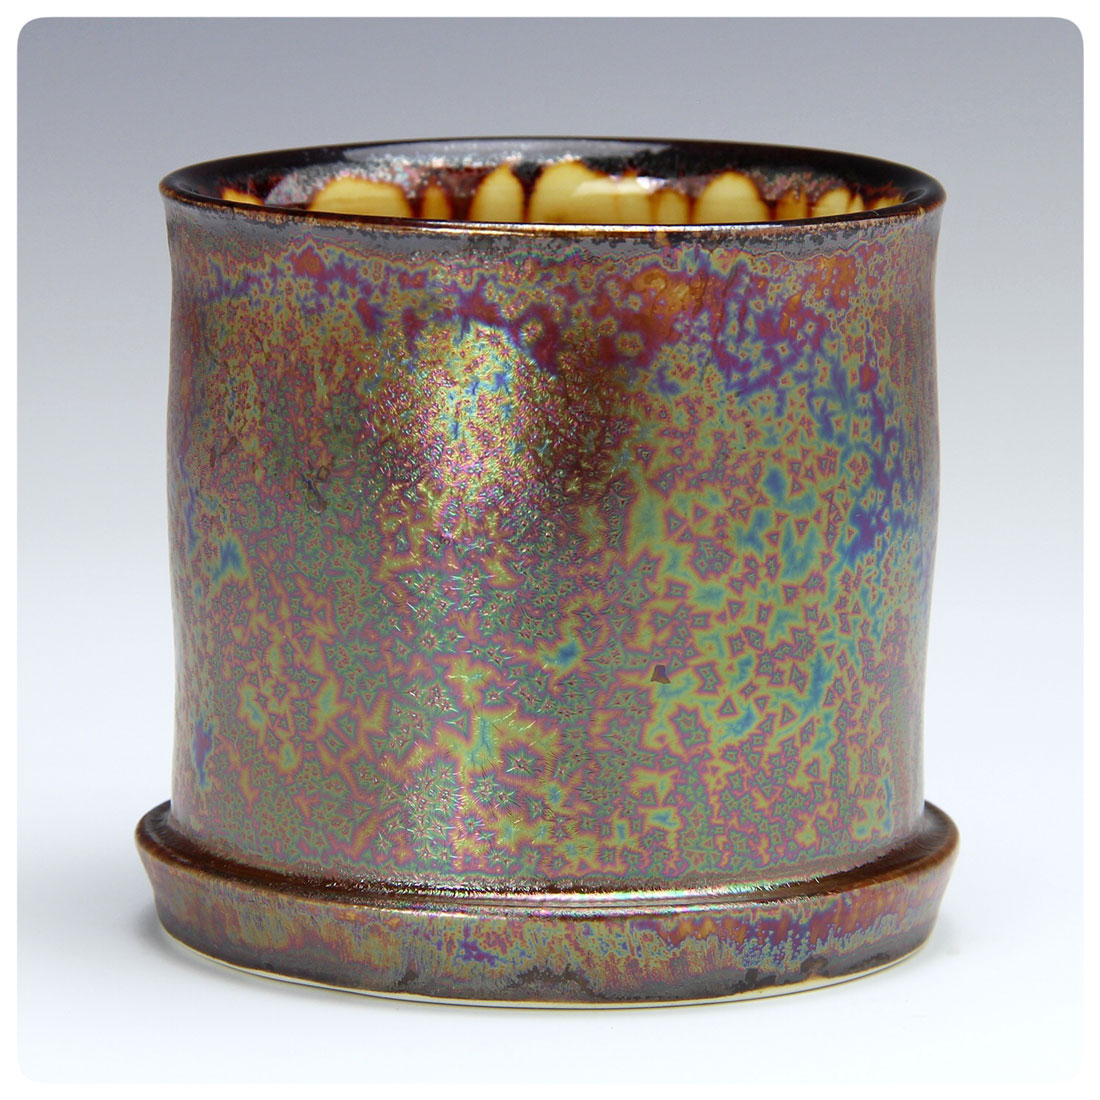 Purple Haze Crystalline Cup made by Bruce Gholson, Bulldog Pottery, Seagrove, North Carolina